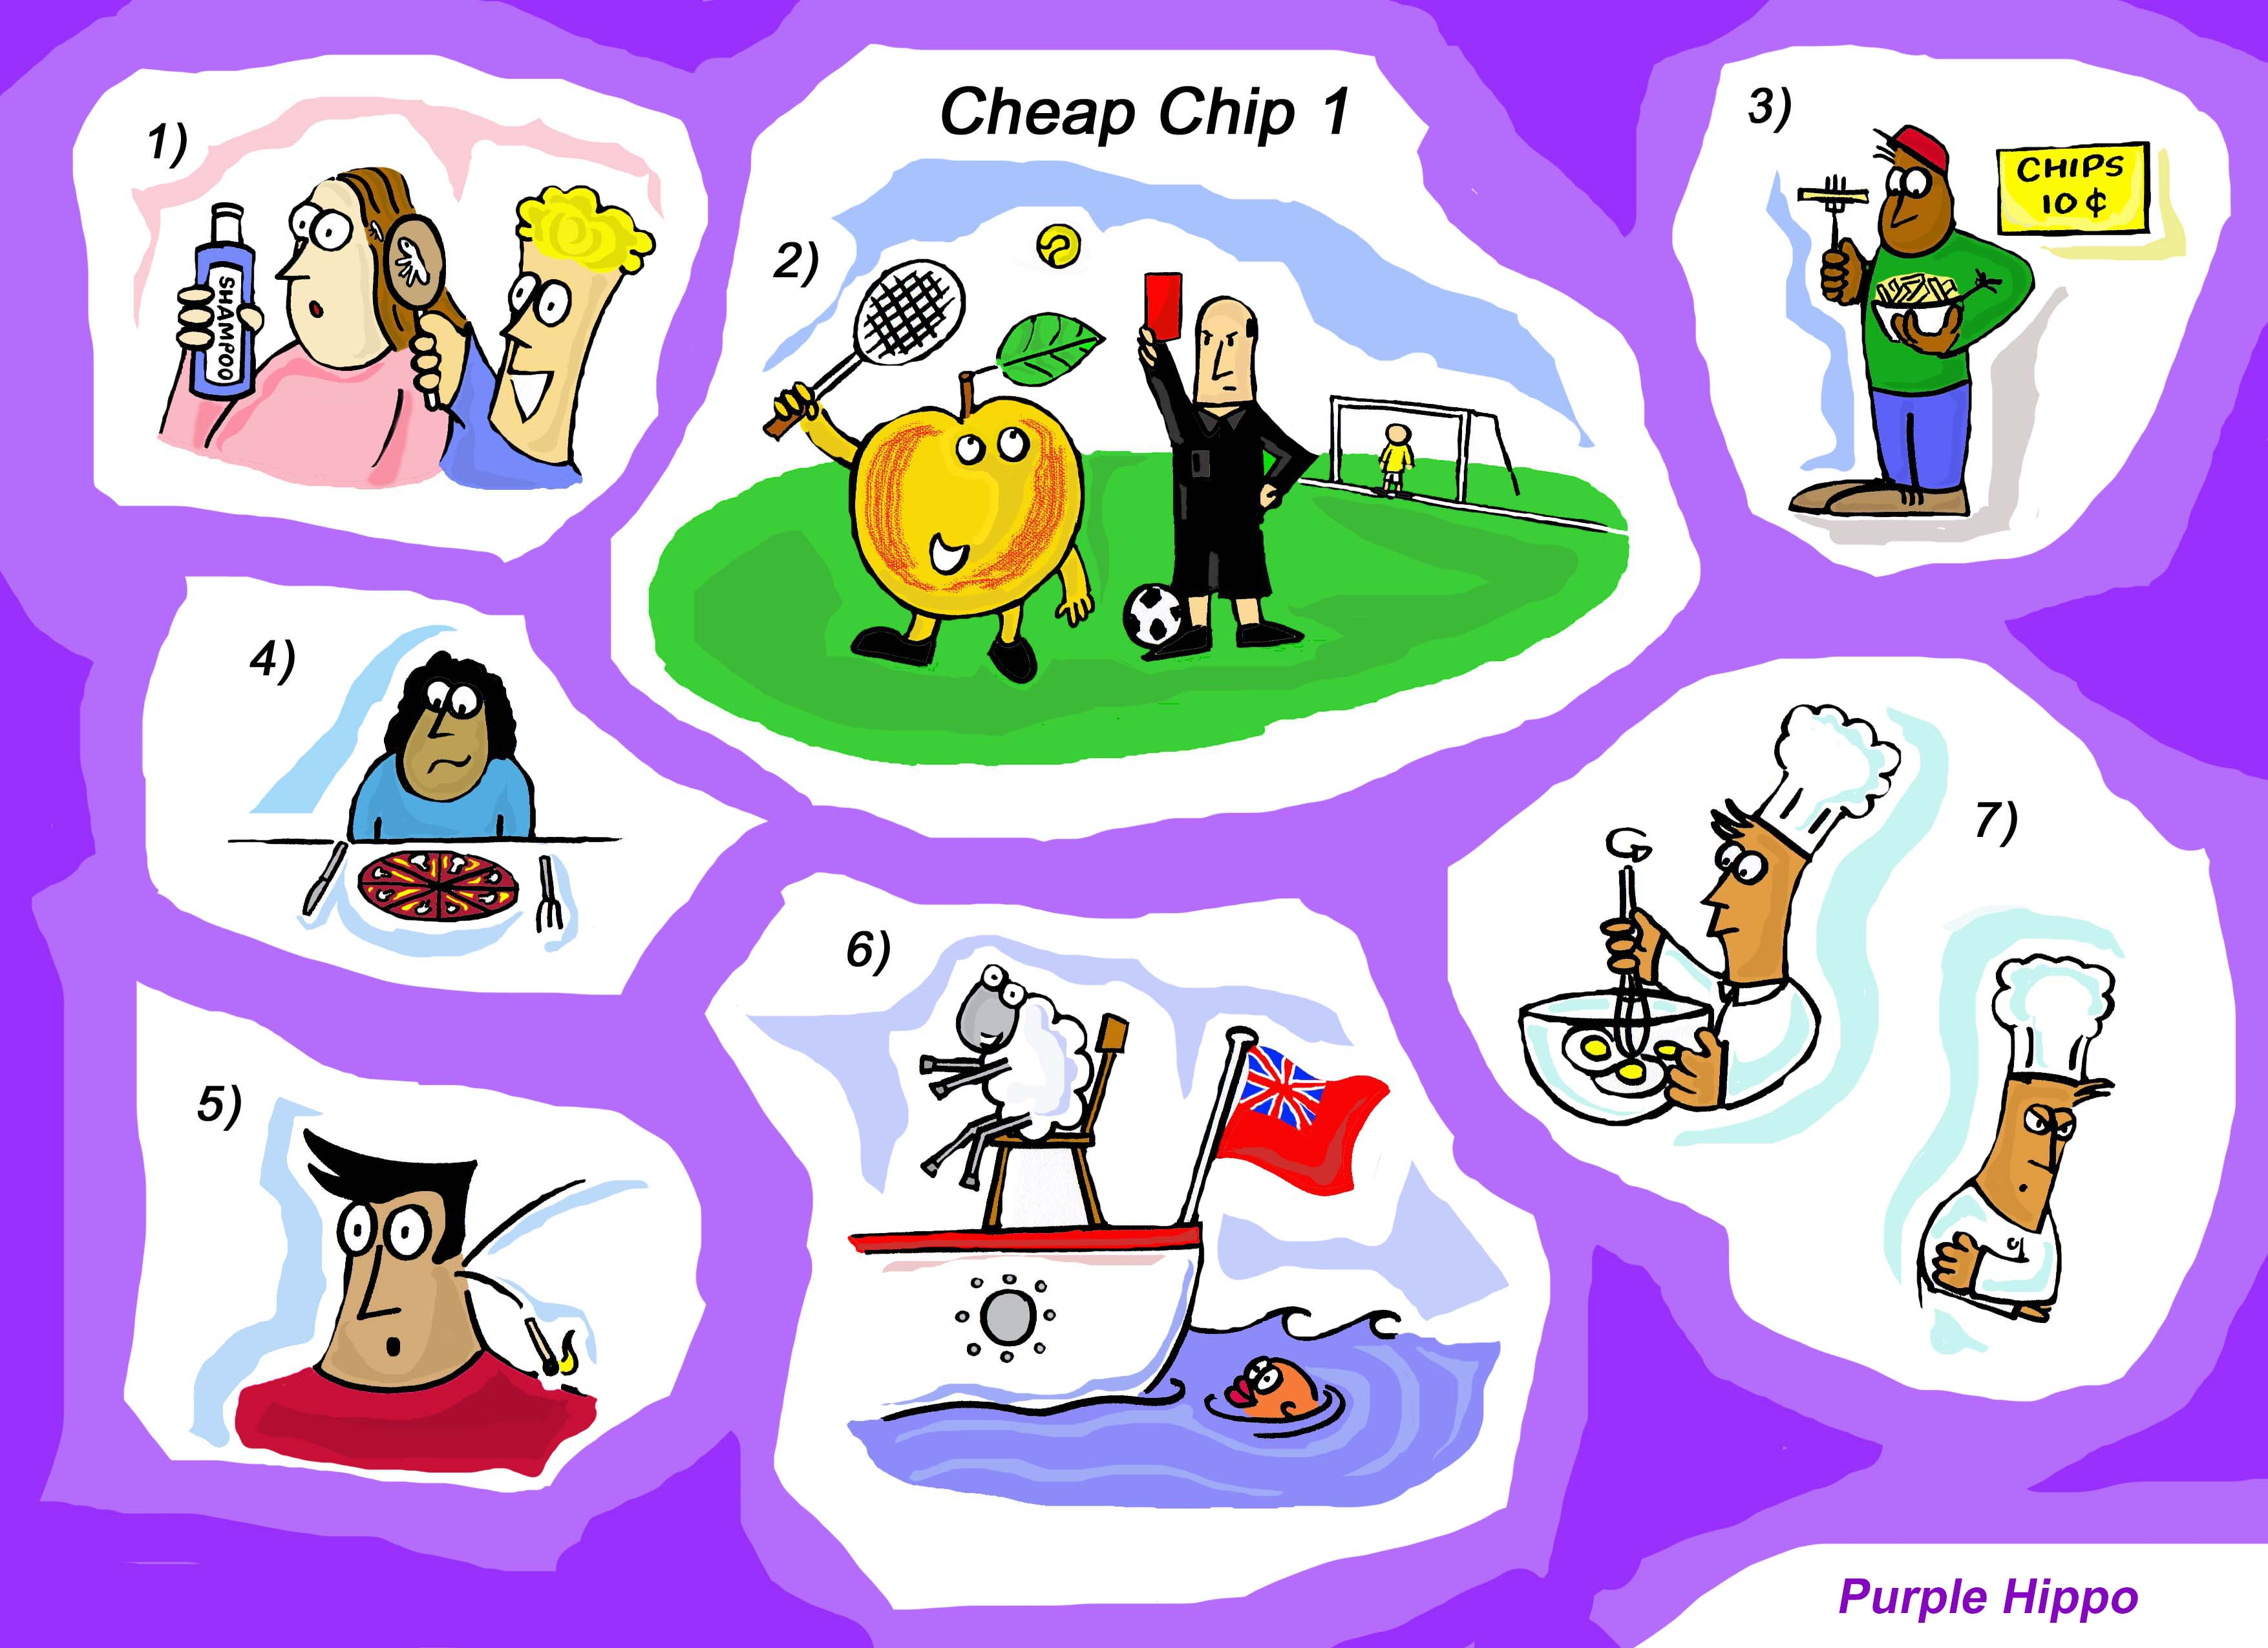 /i:/ /I/ Cheap Chip Pronunciation Poem and Activities